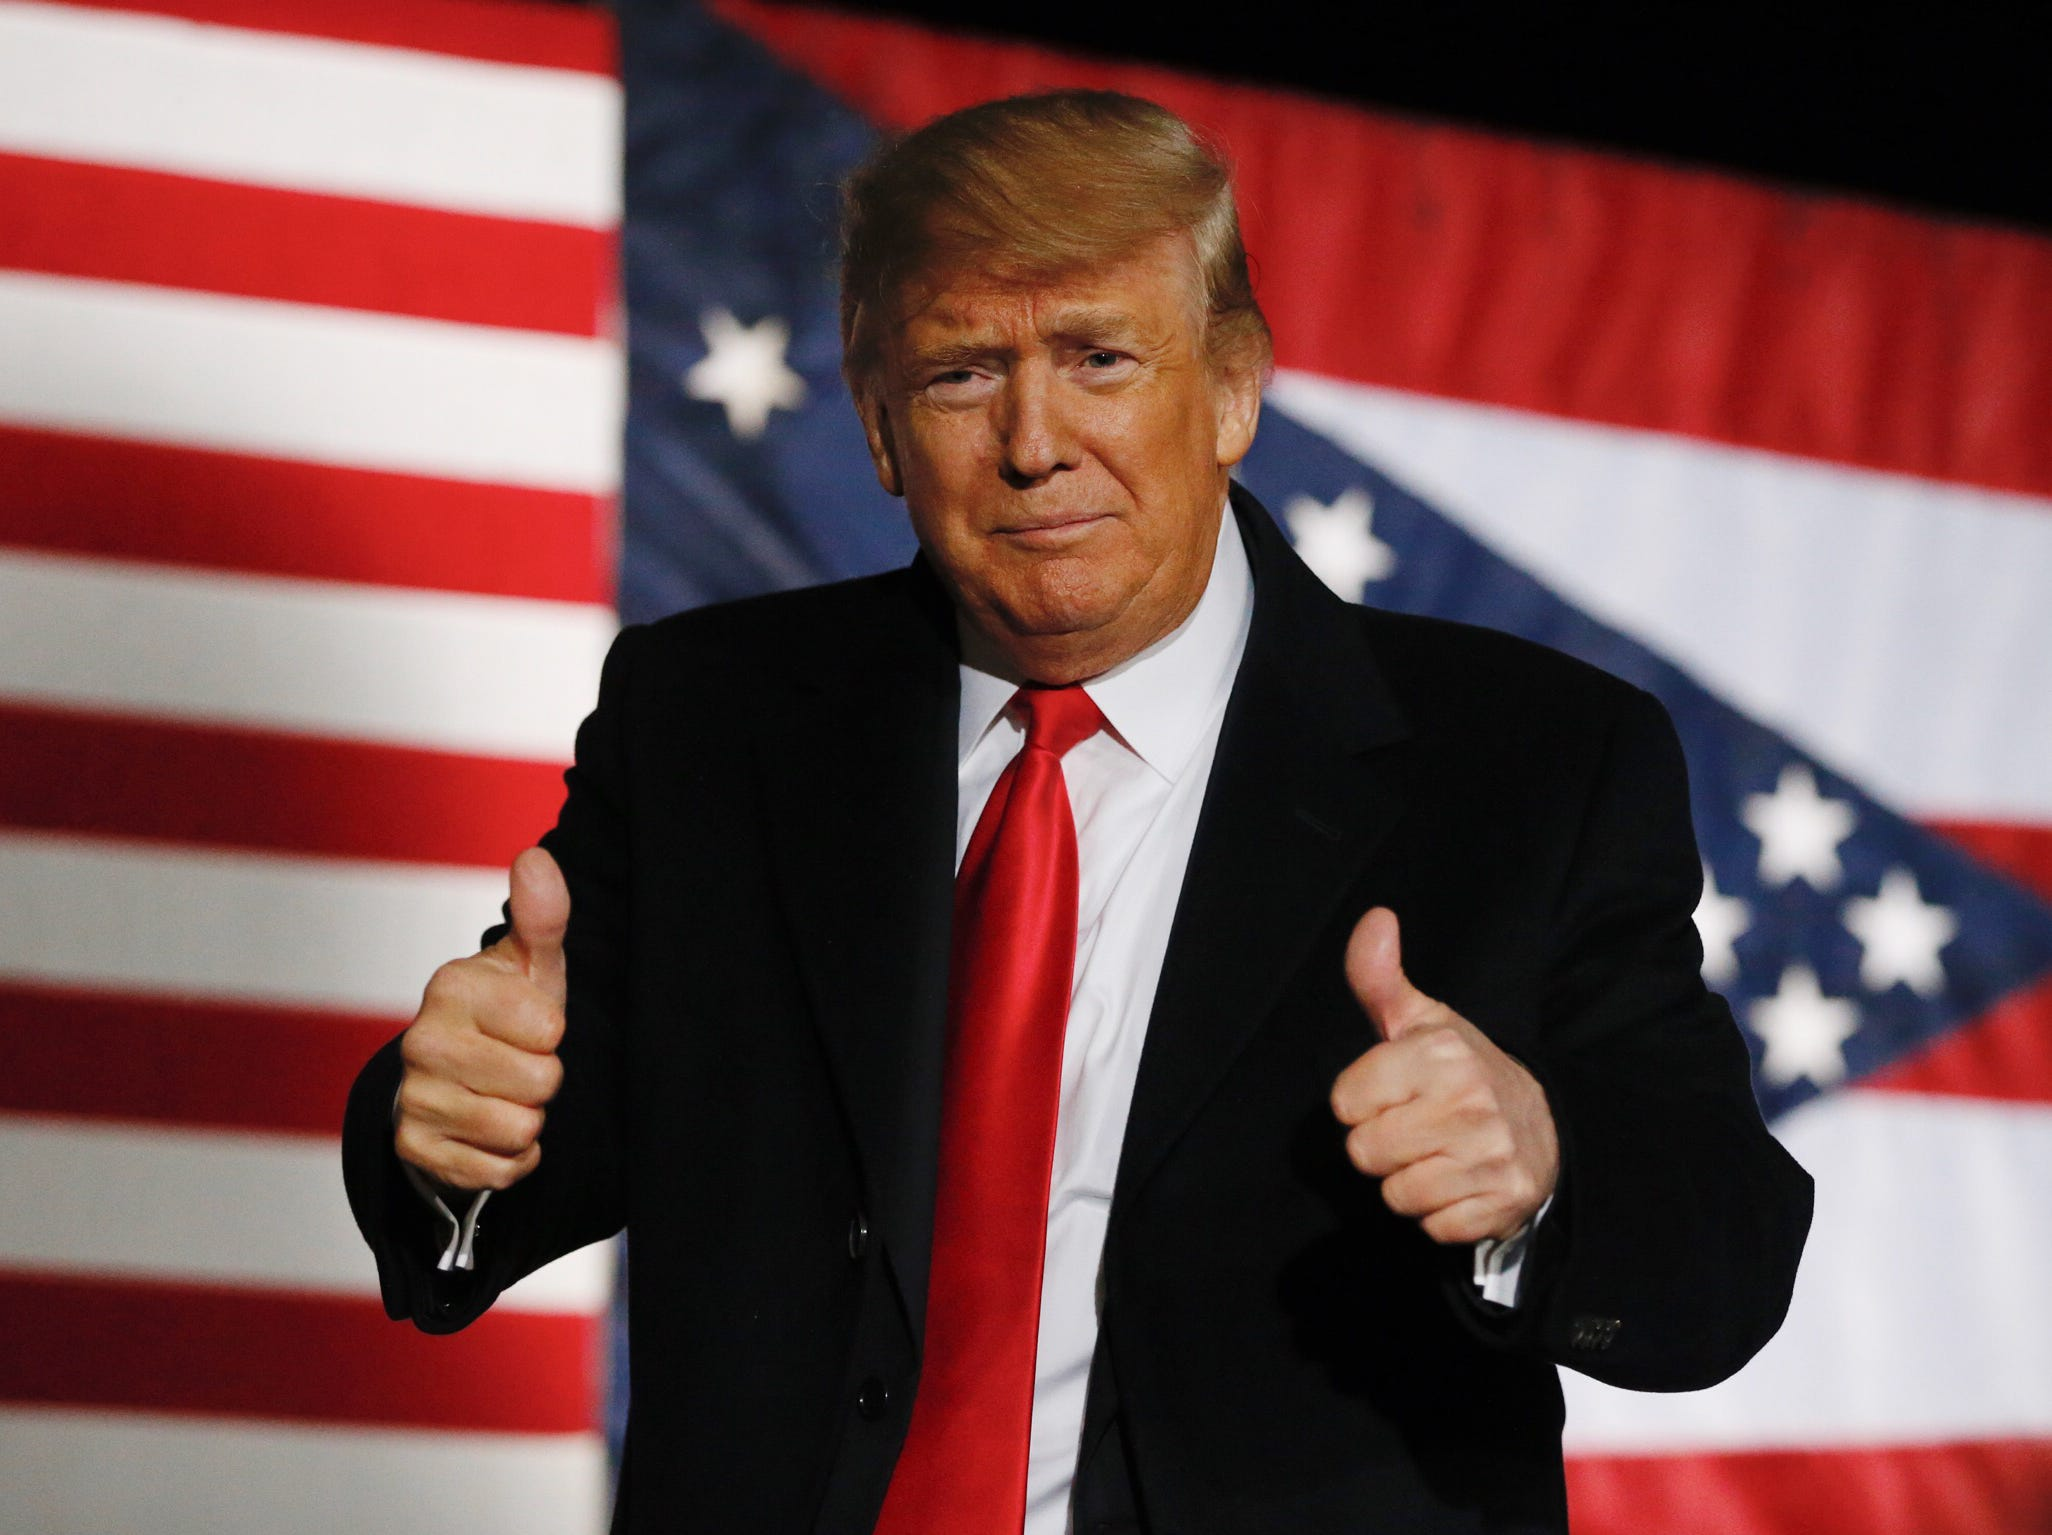 President Donald Trump gives a thumbs-up at the end of his speech.